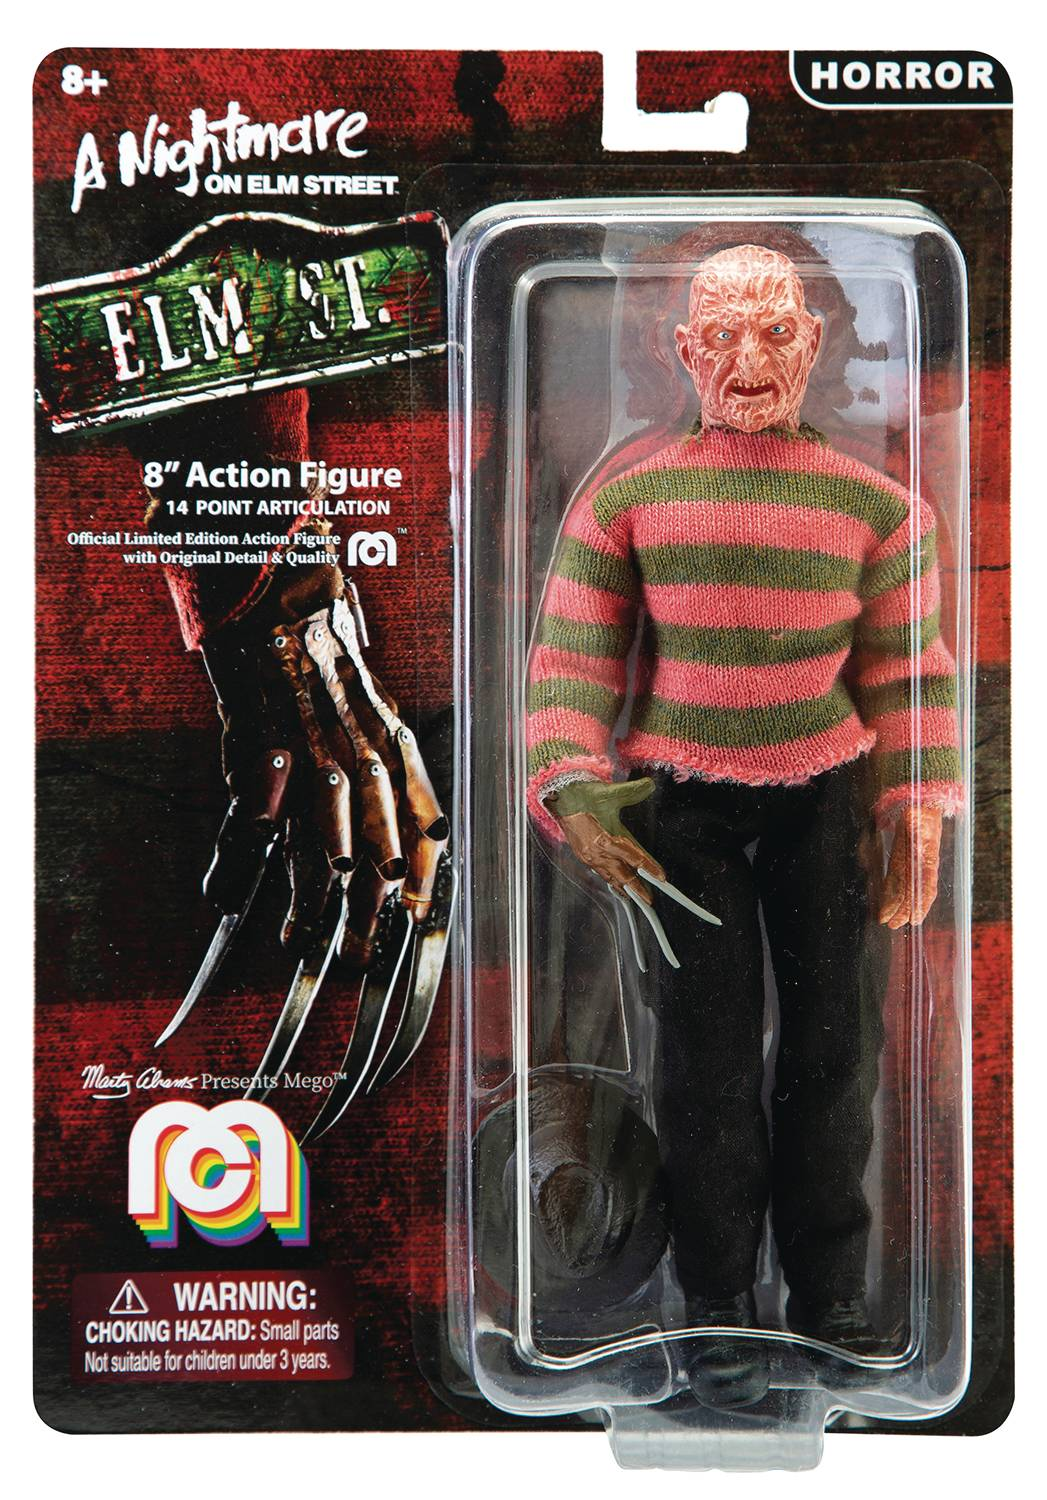 MEGO HORROR WAVE 5 FREDDY KRUEGER 8IN AF